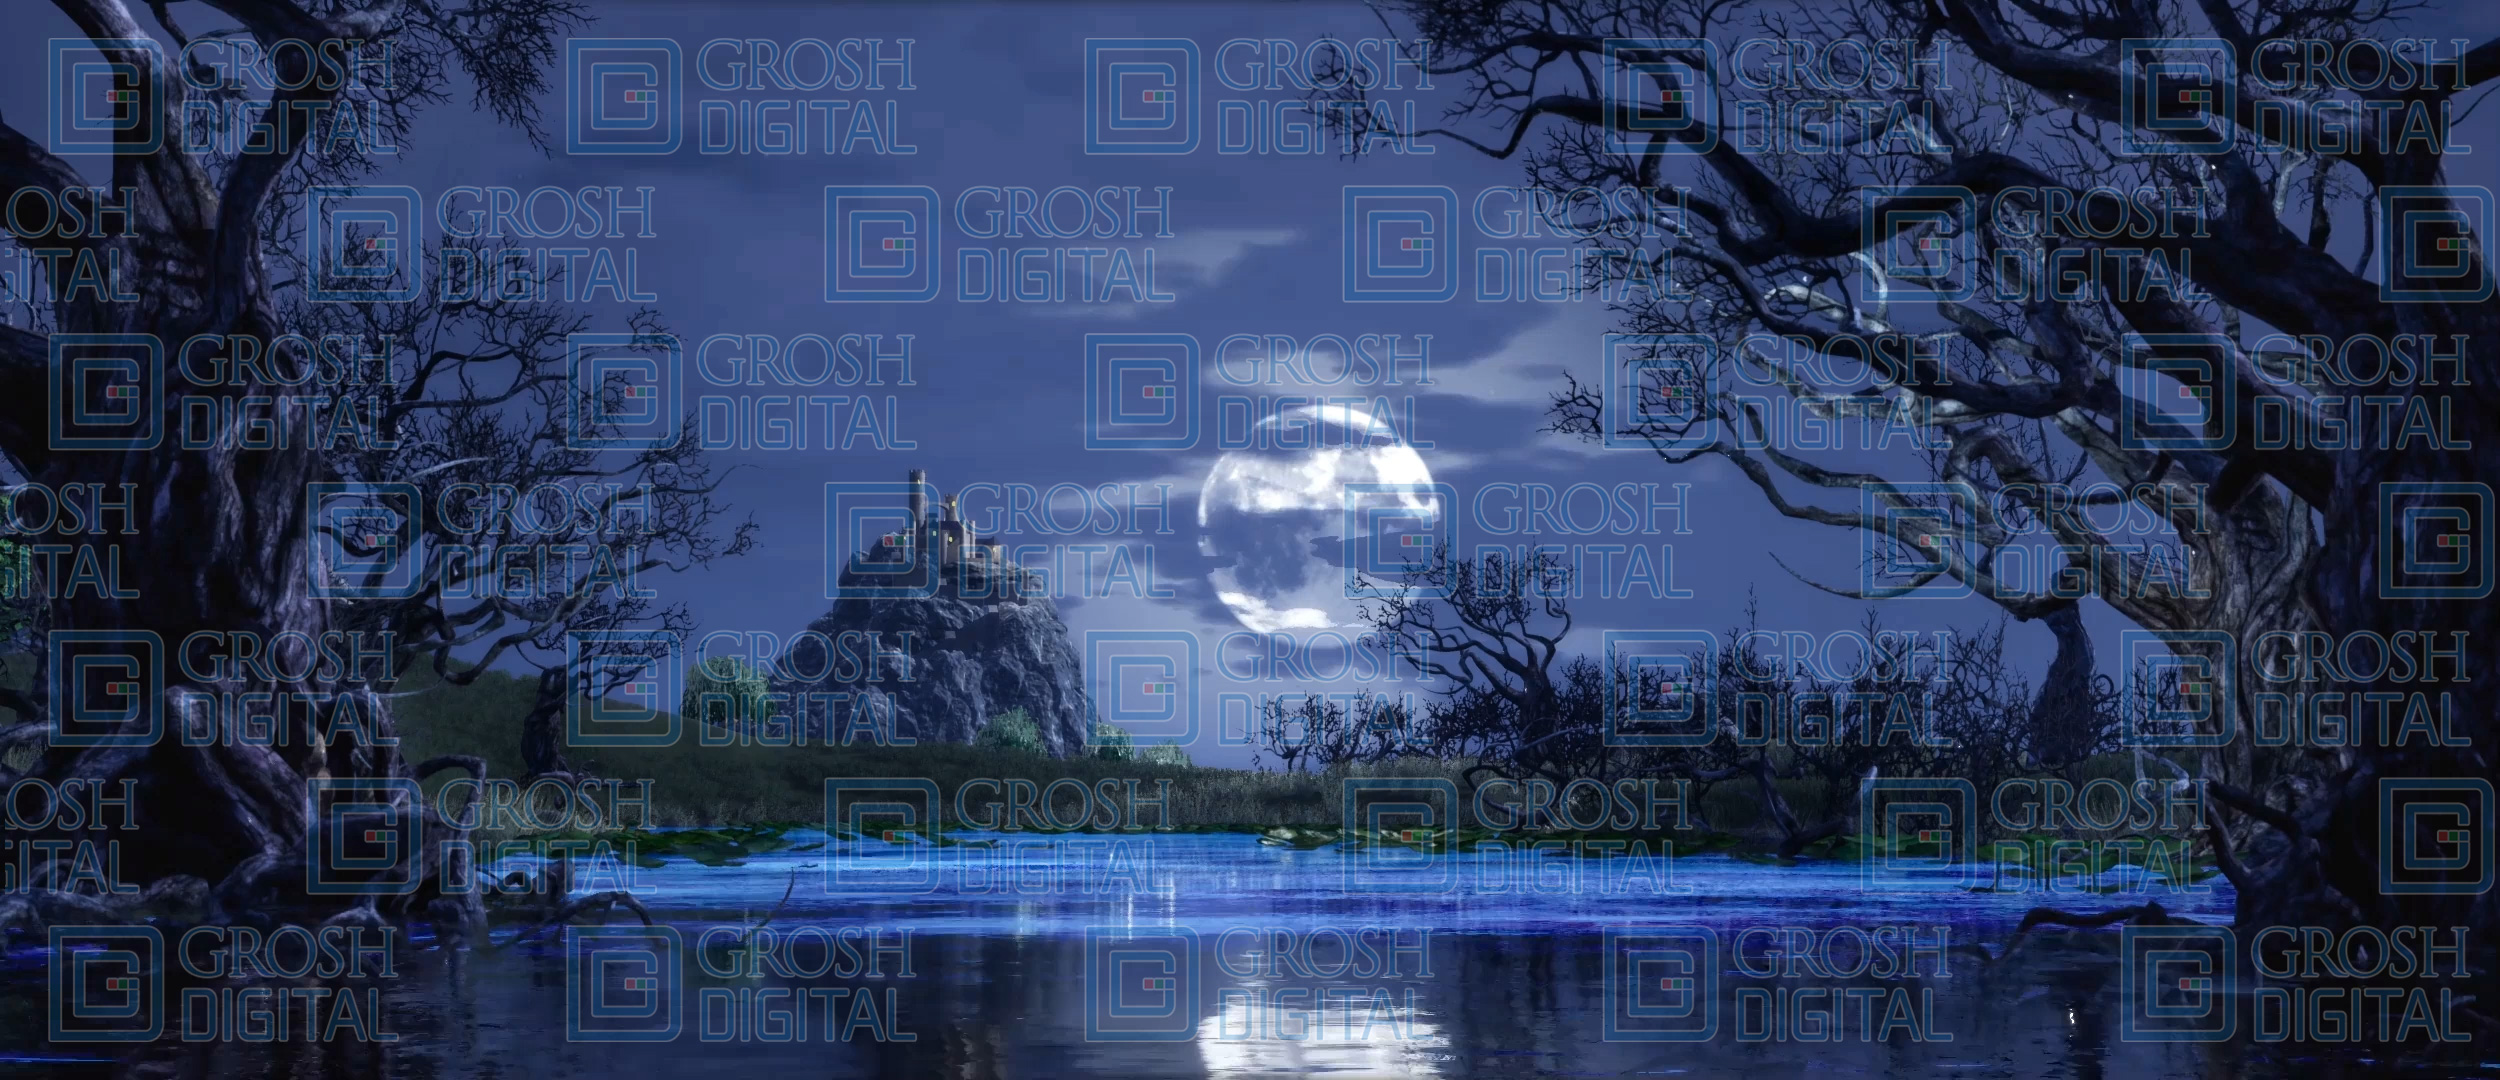 Swan Lake Projected Backdrop for Beauty and the Beast, Castles, Cinderella, Frozen, Giselle, Into the Woods, Landscapes